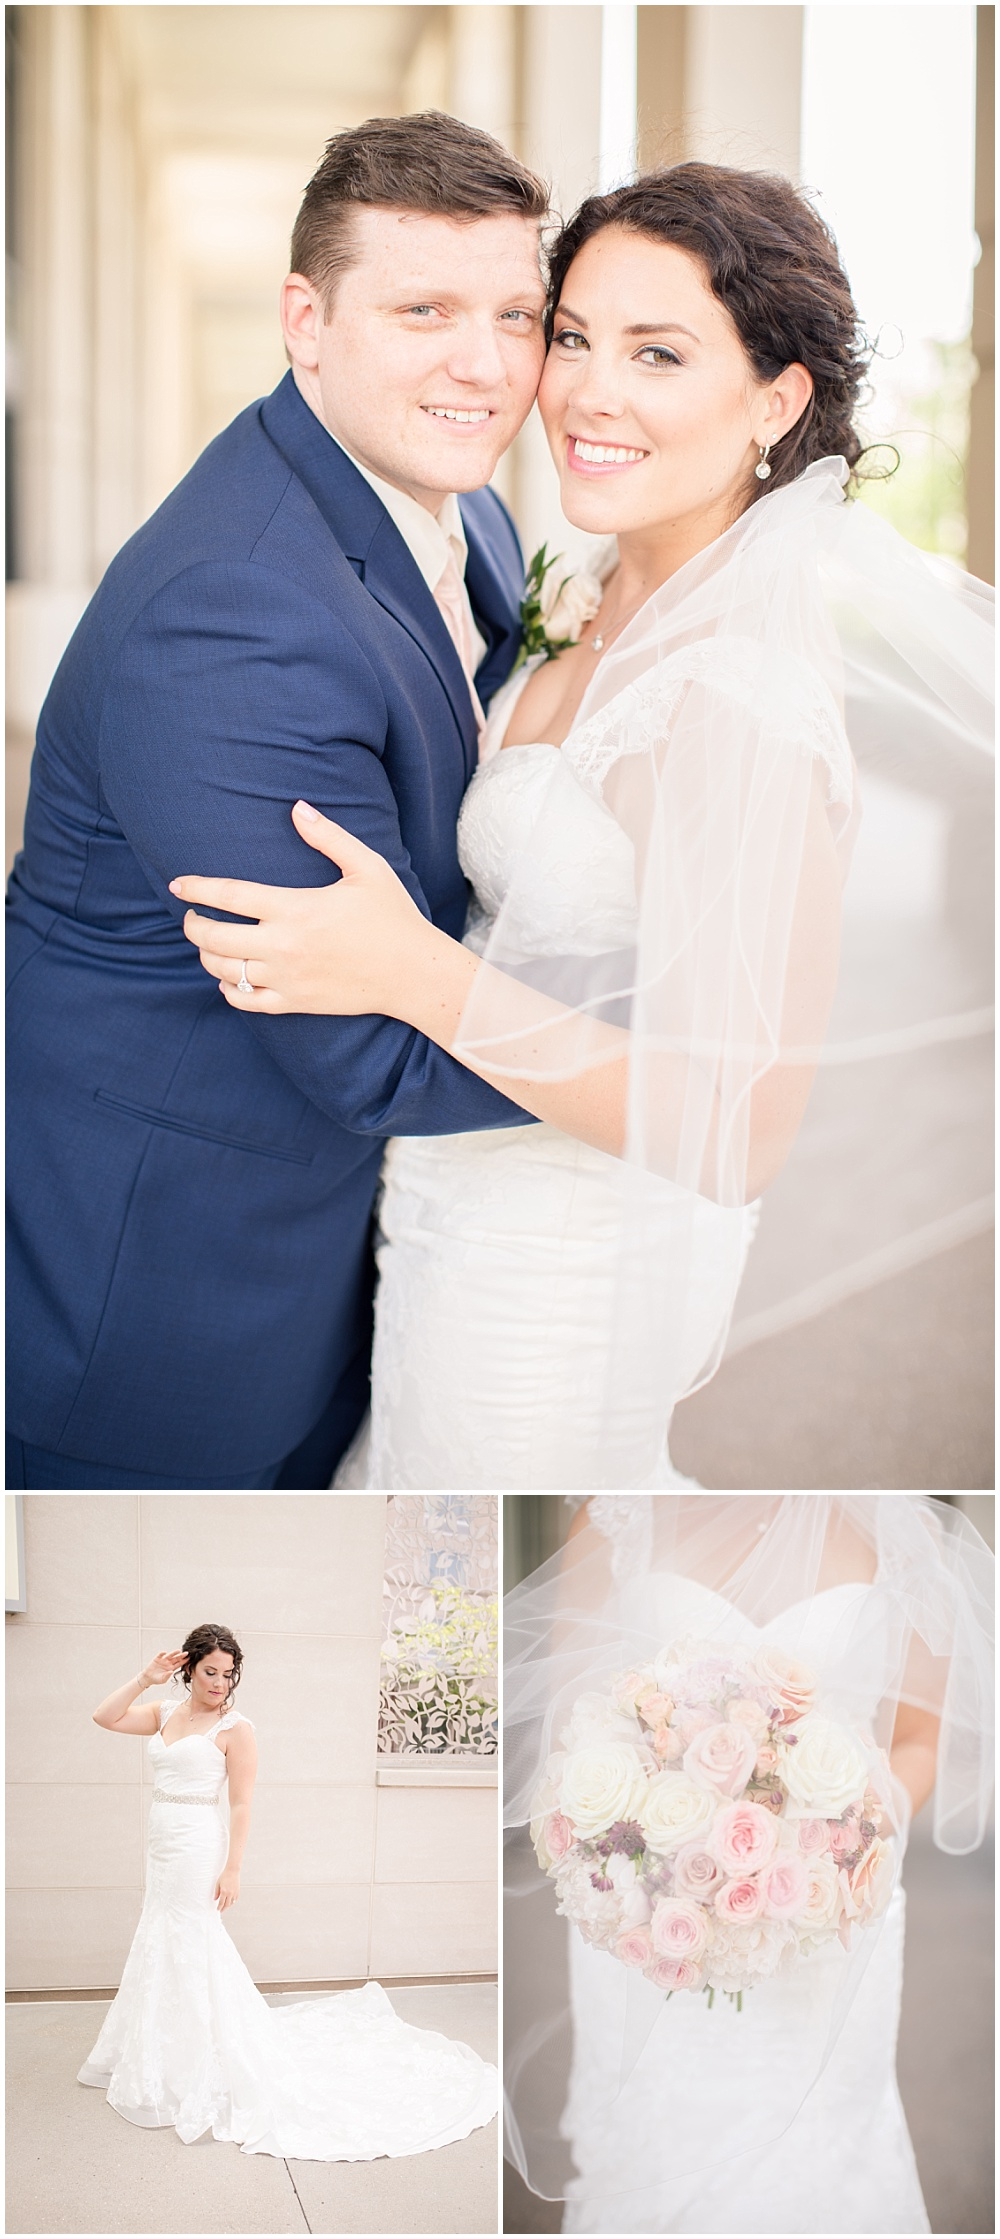 Bride and groom portraits.   Spring blush and gold downtown Indianapolis Central Library wedding alongside Evangeline Renee Photography + Jessica Dum Wedding Coordination